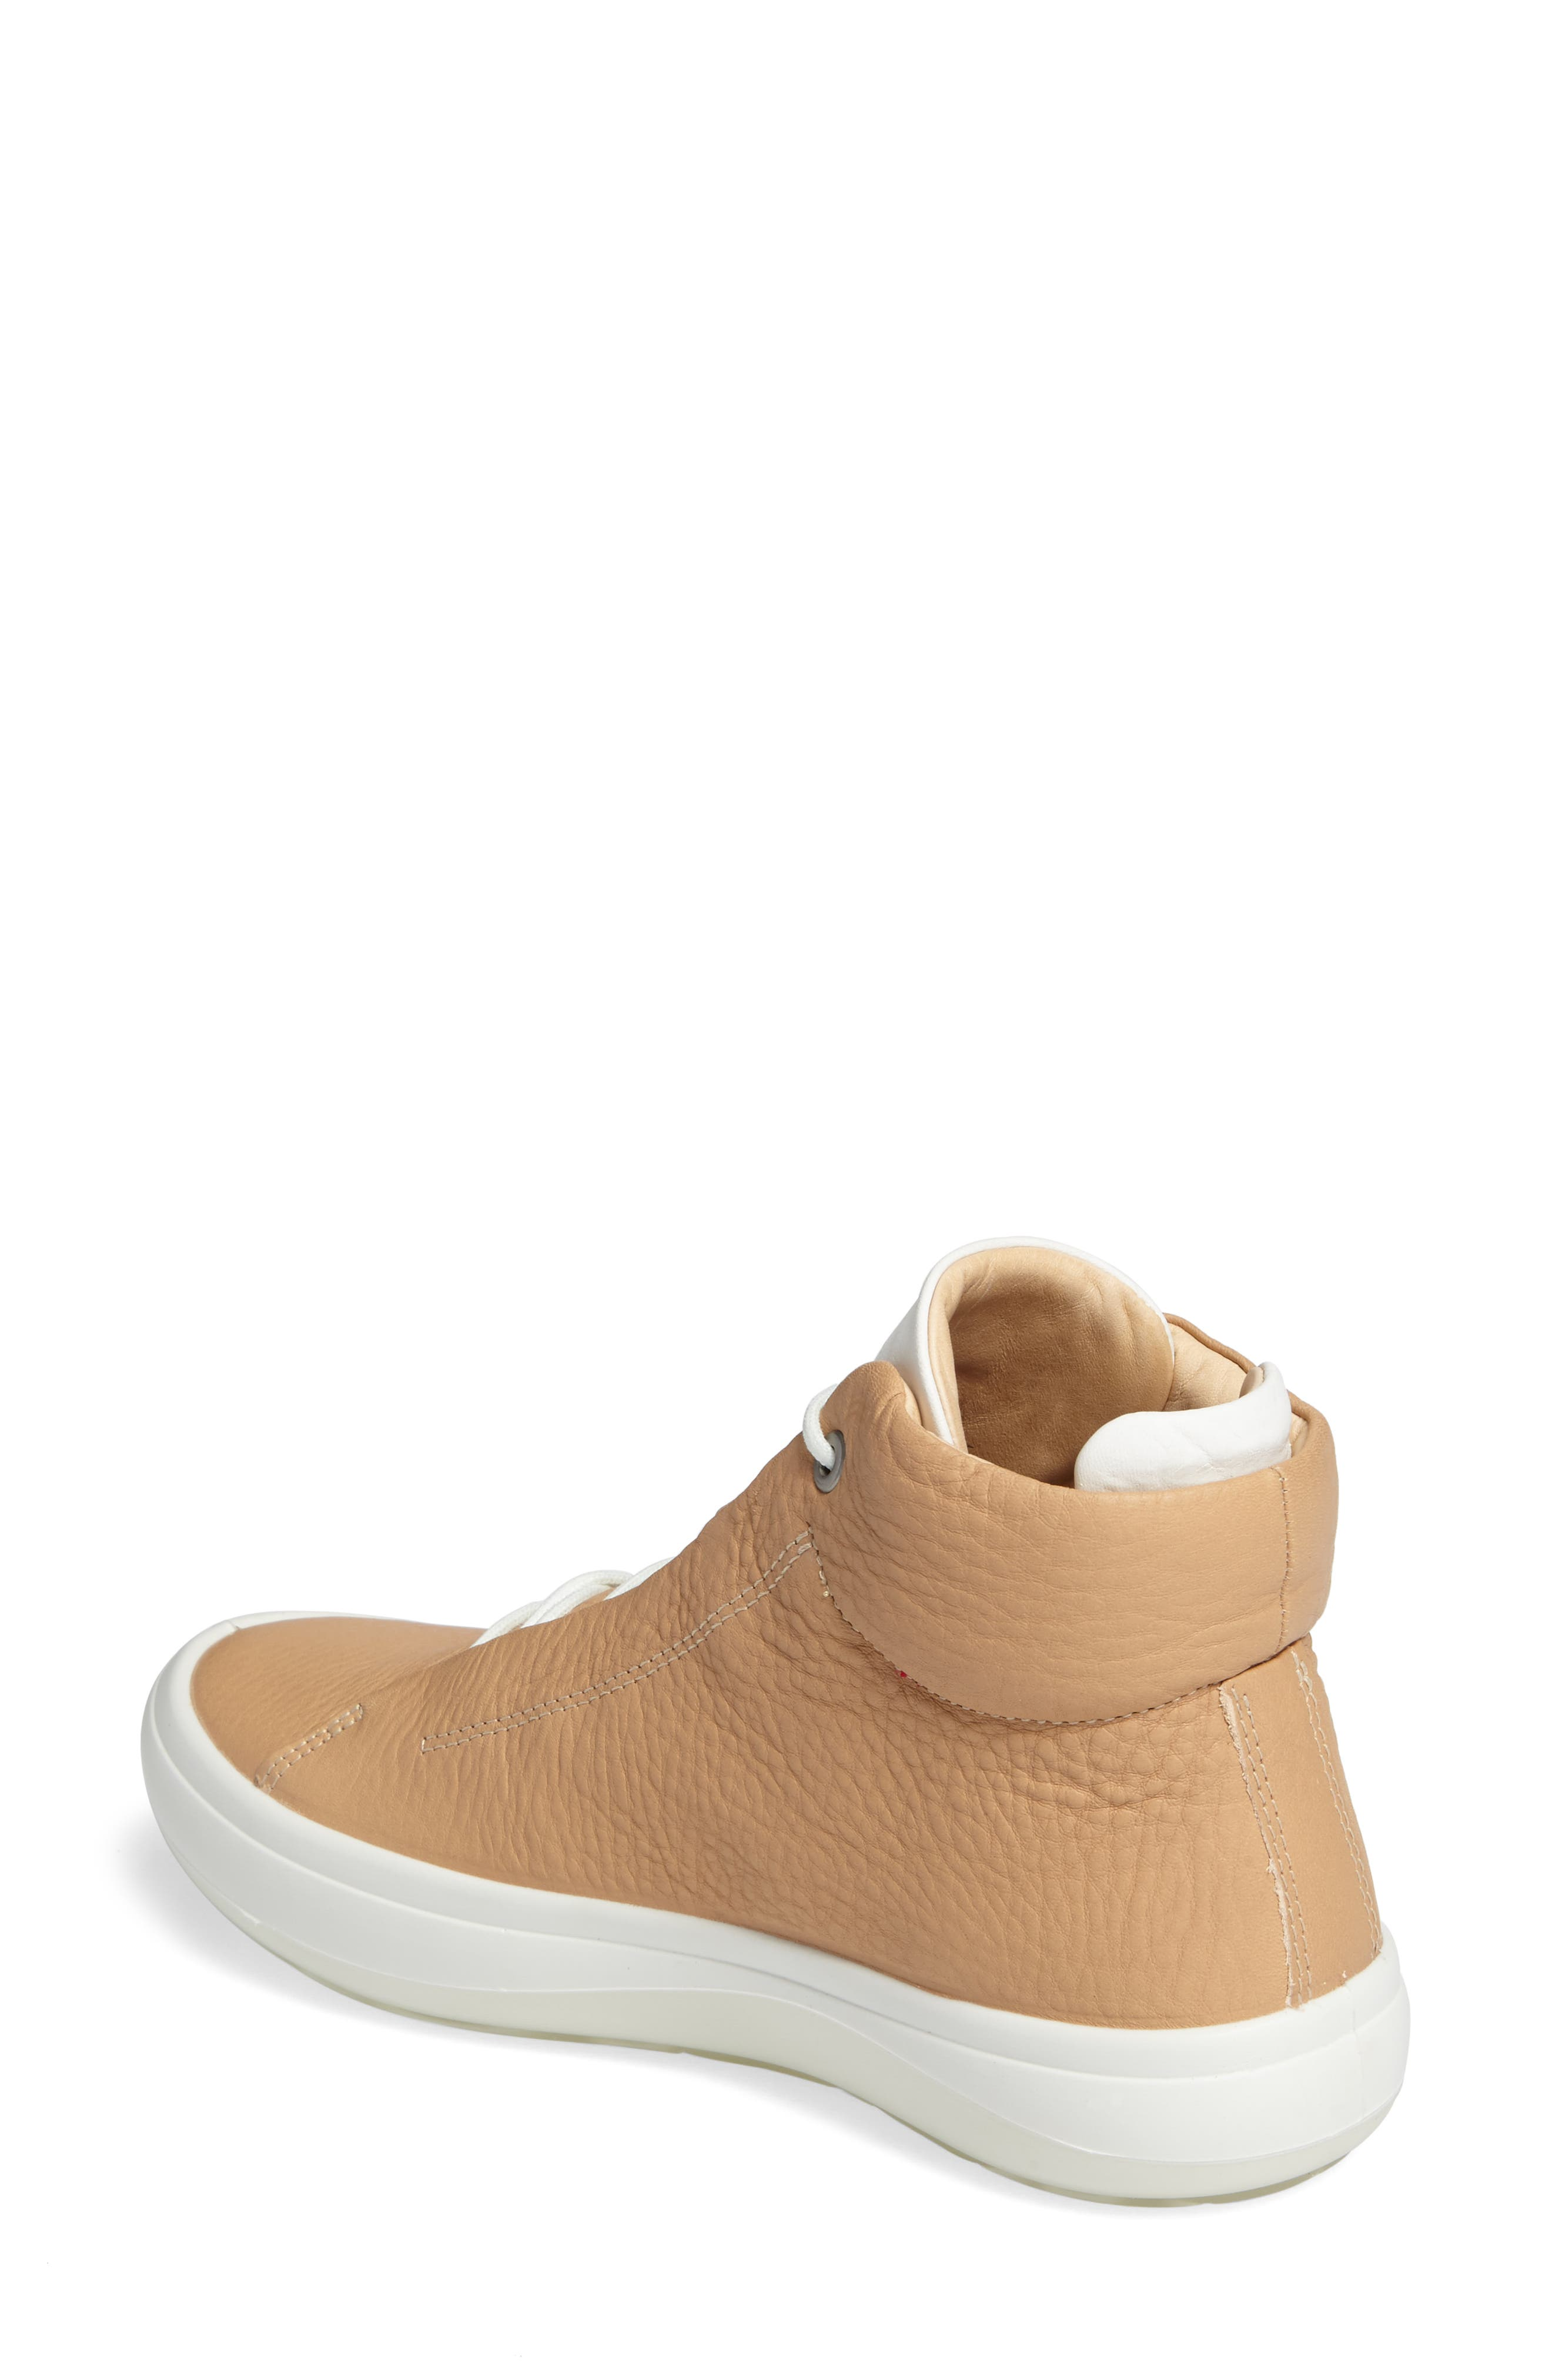 Kinhin Sneaker,                             Alternate thumbnail 2, color,                             Volluto Leather